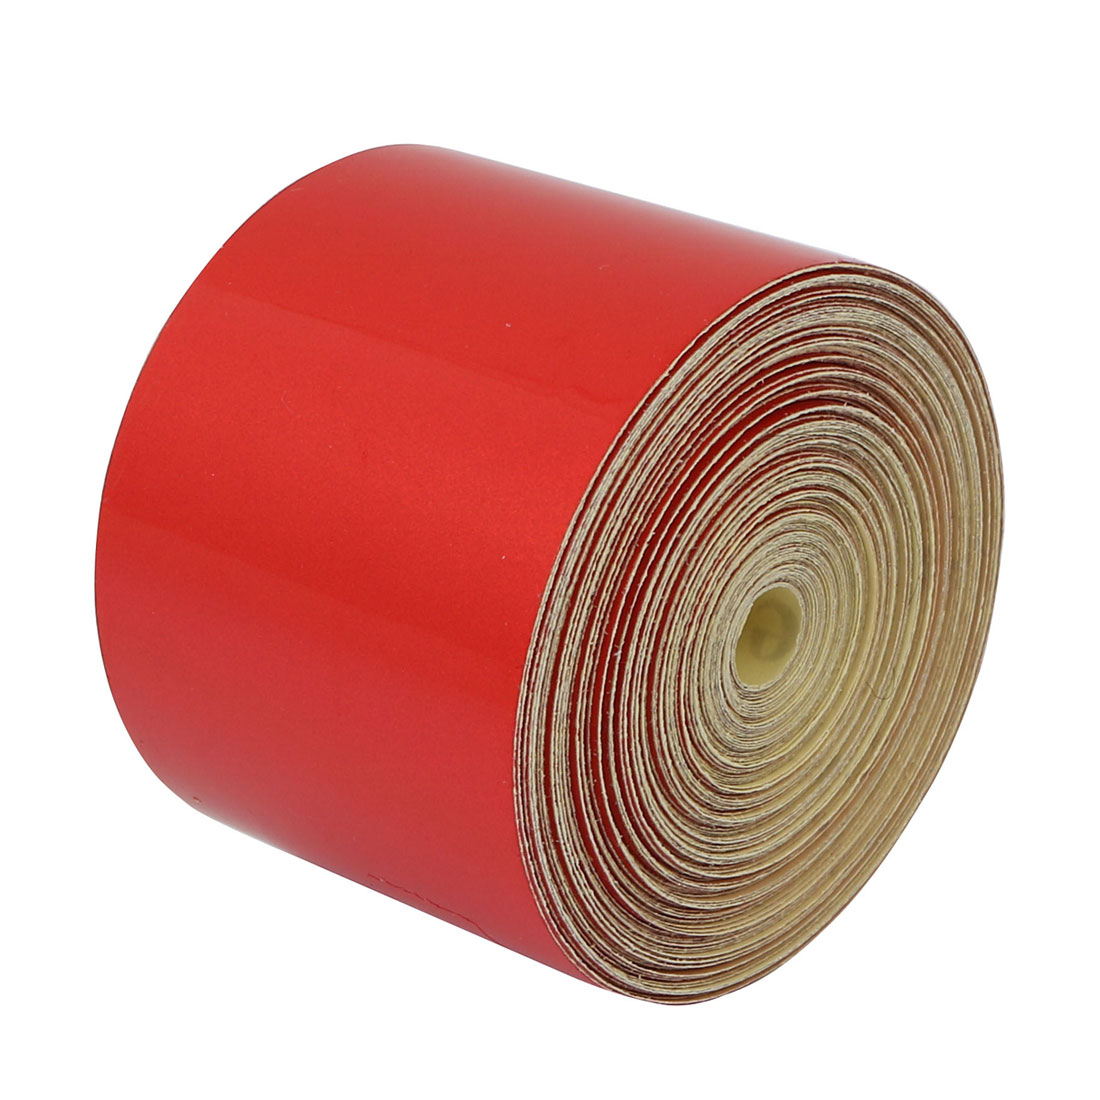 5cm Width 15M Length Single Sided Adhesive Reflective Warning Tape Red